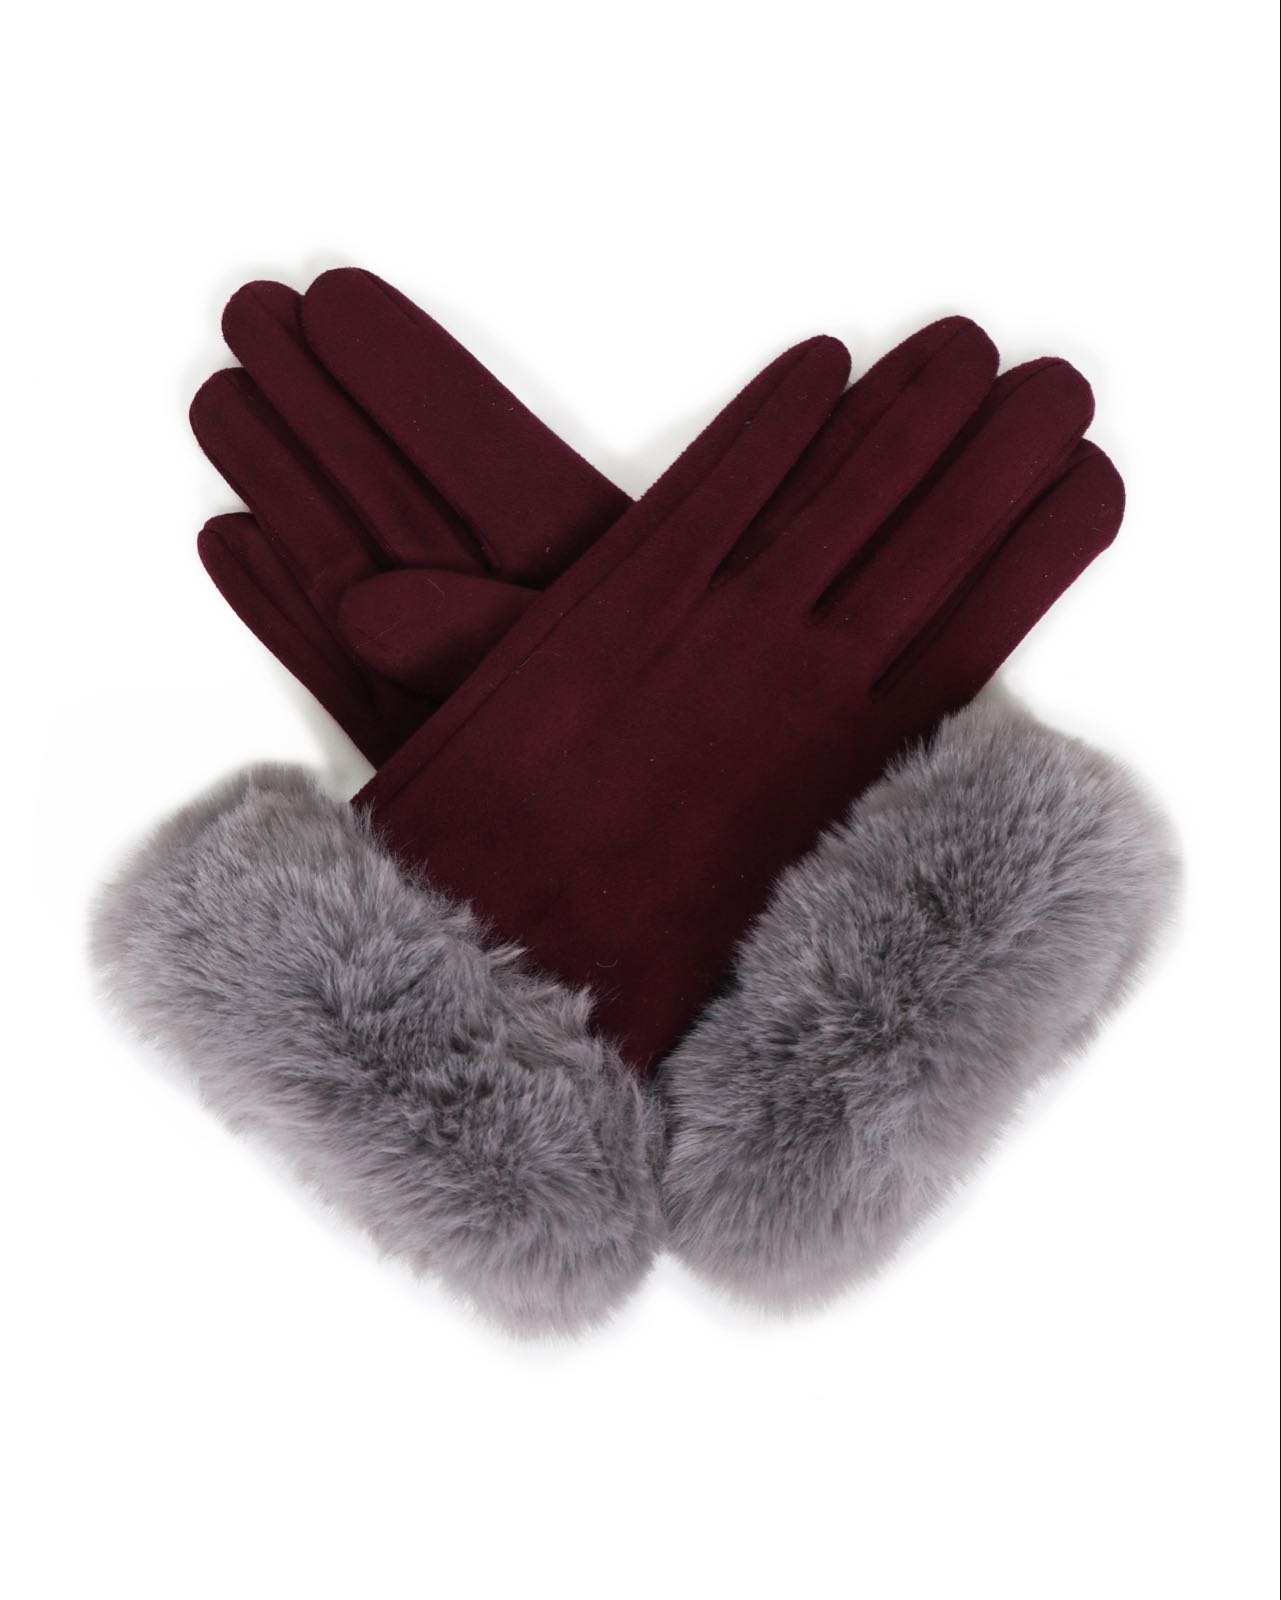 Powder Bettina Magenta faux suede Gloves with faux fur in slate